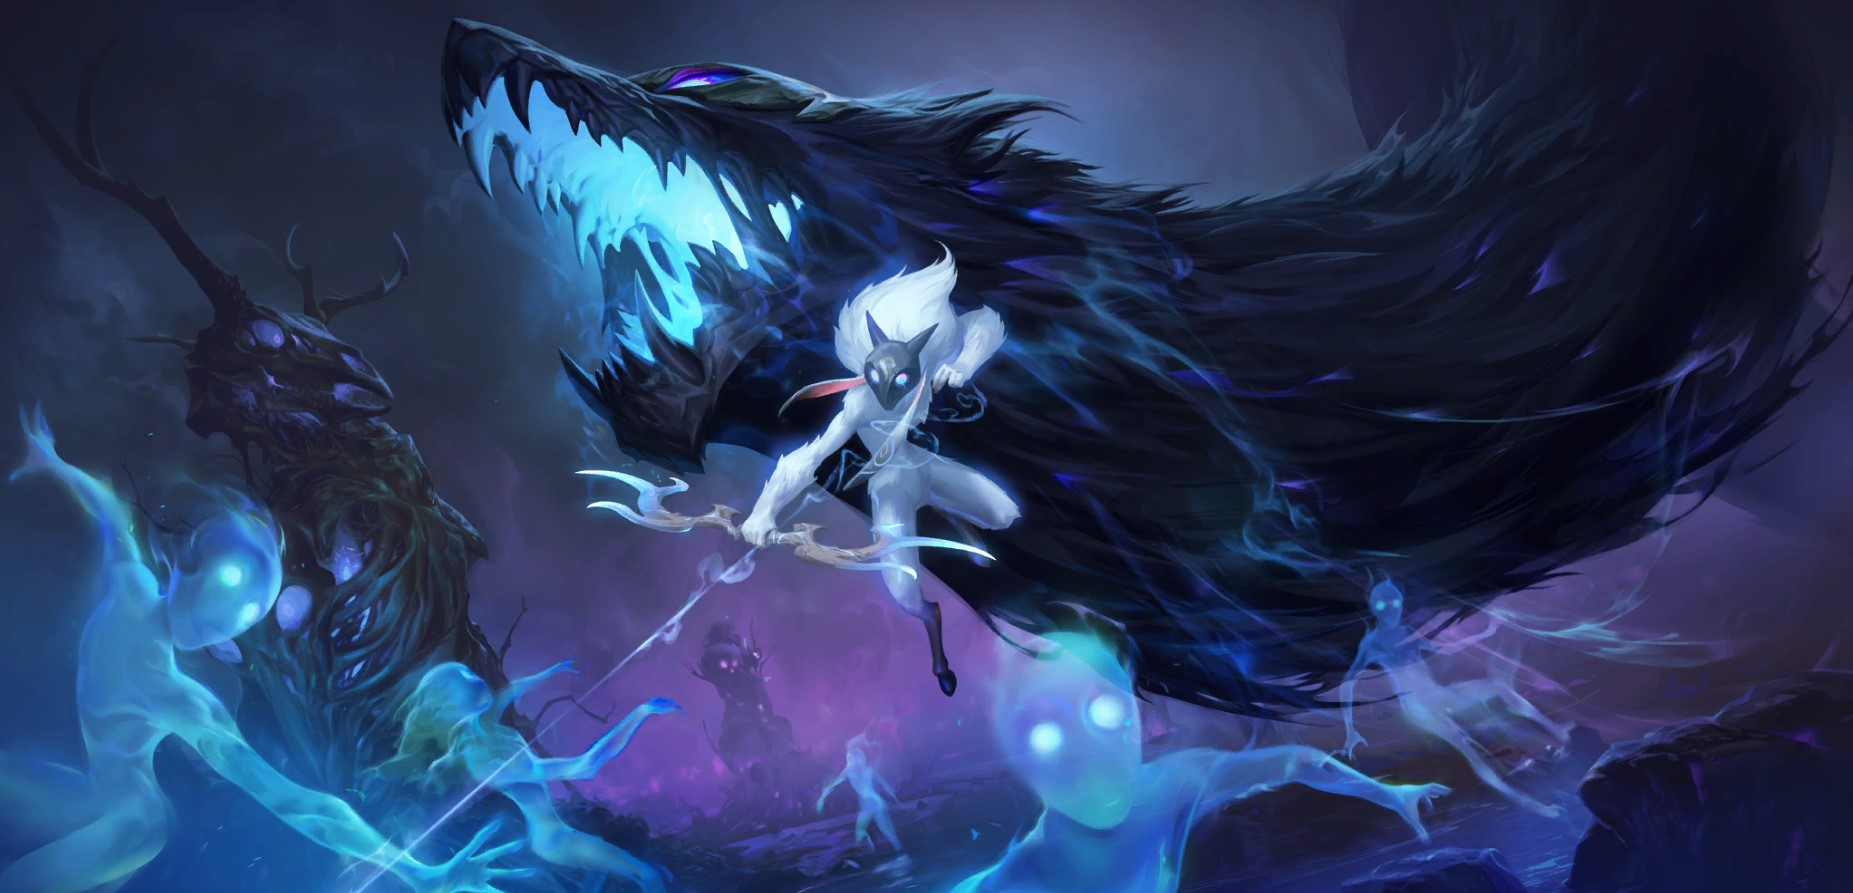 Empires of the Ascended LoR Card Impressions: Kindred (Spirit Leech, Mask Mother, and More)